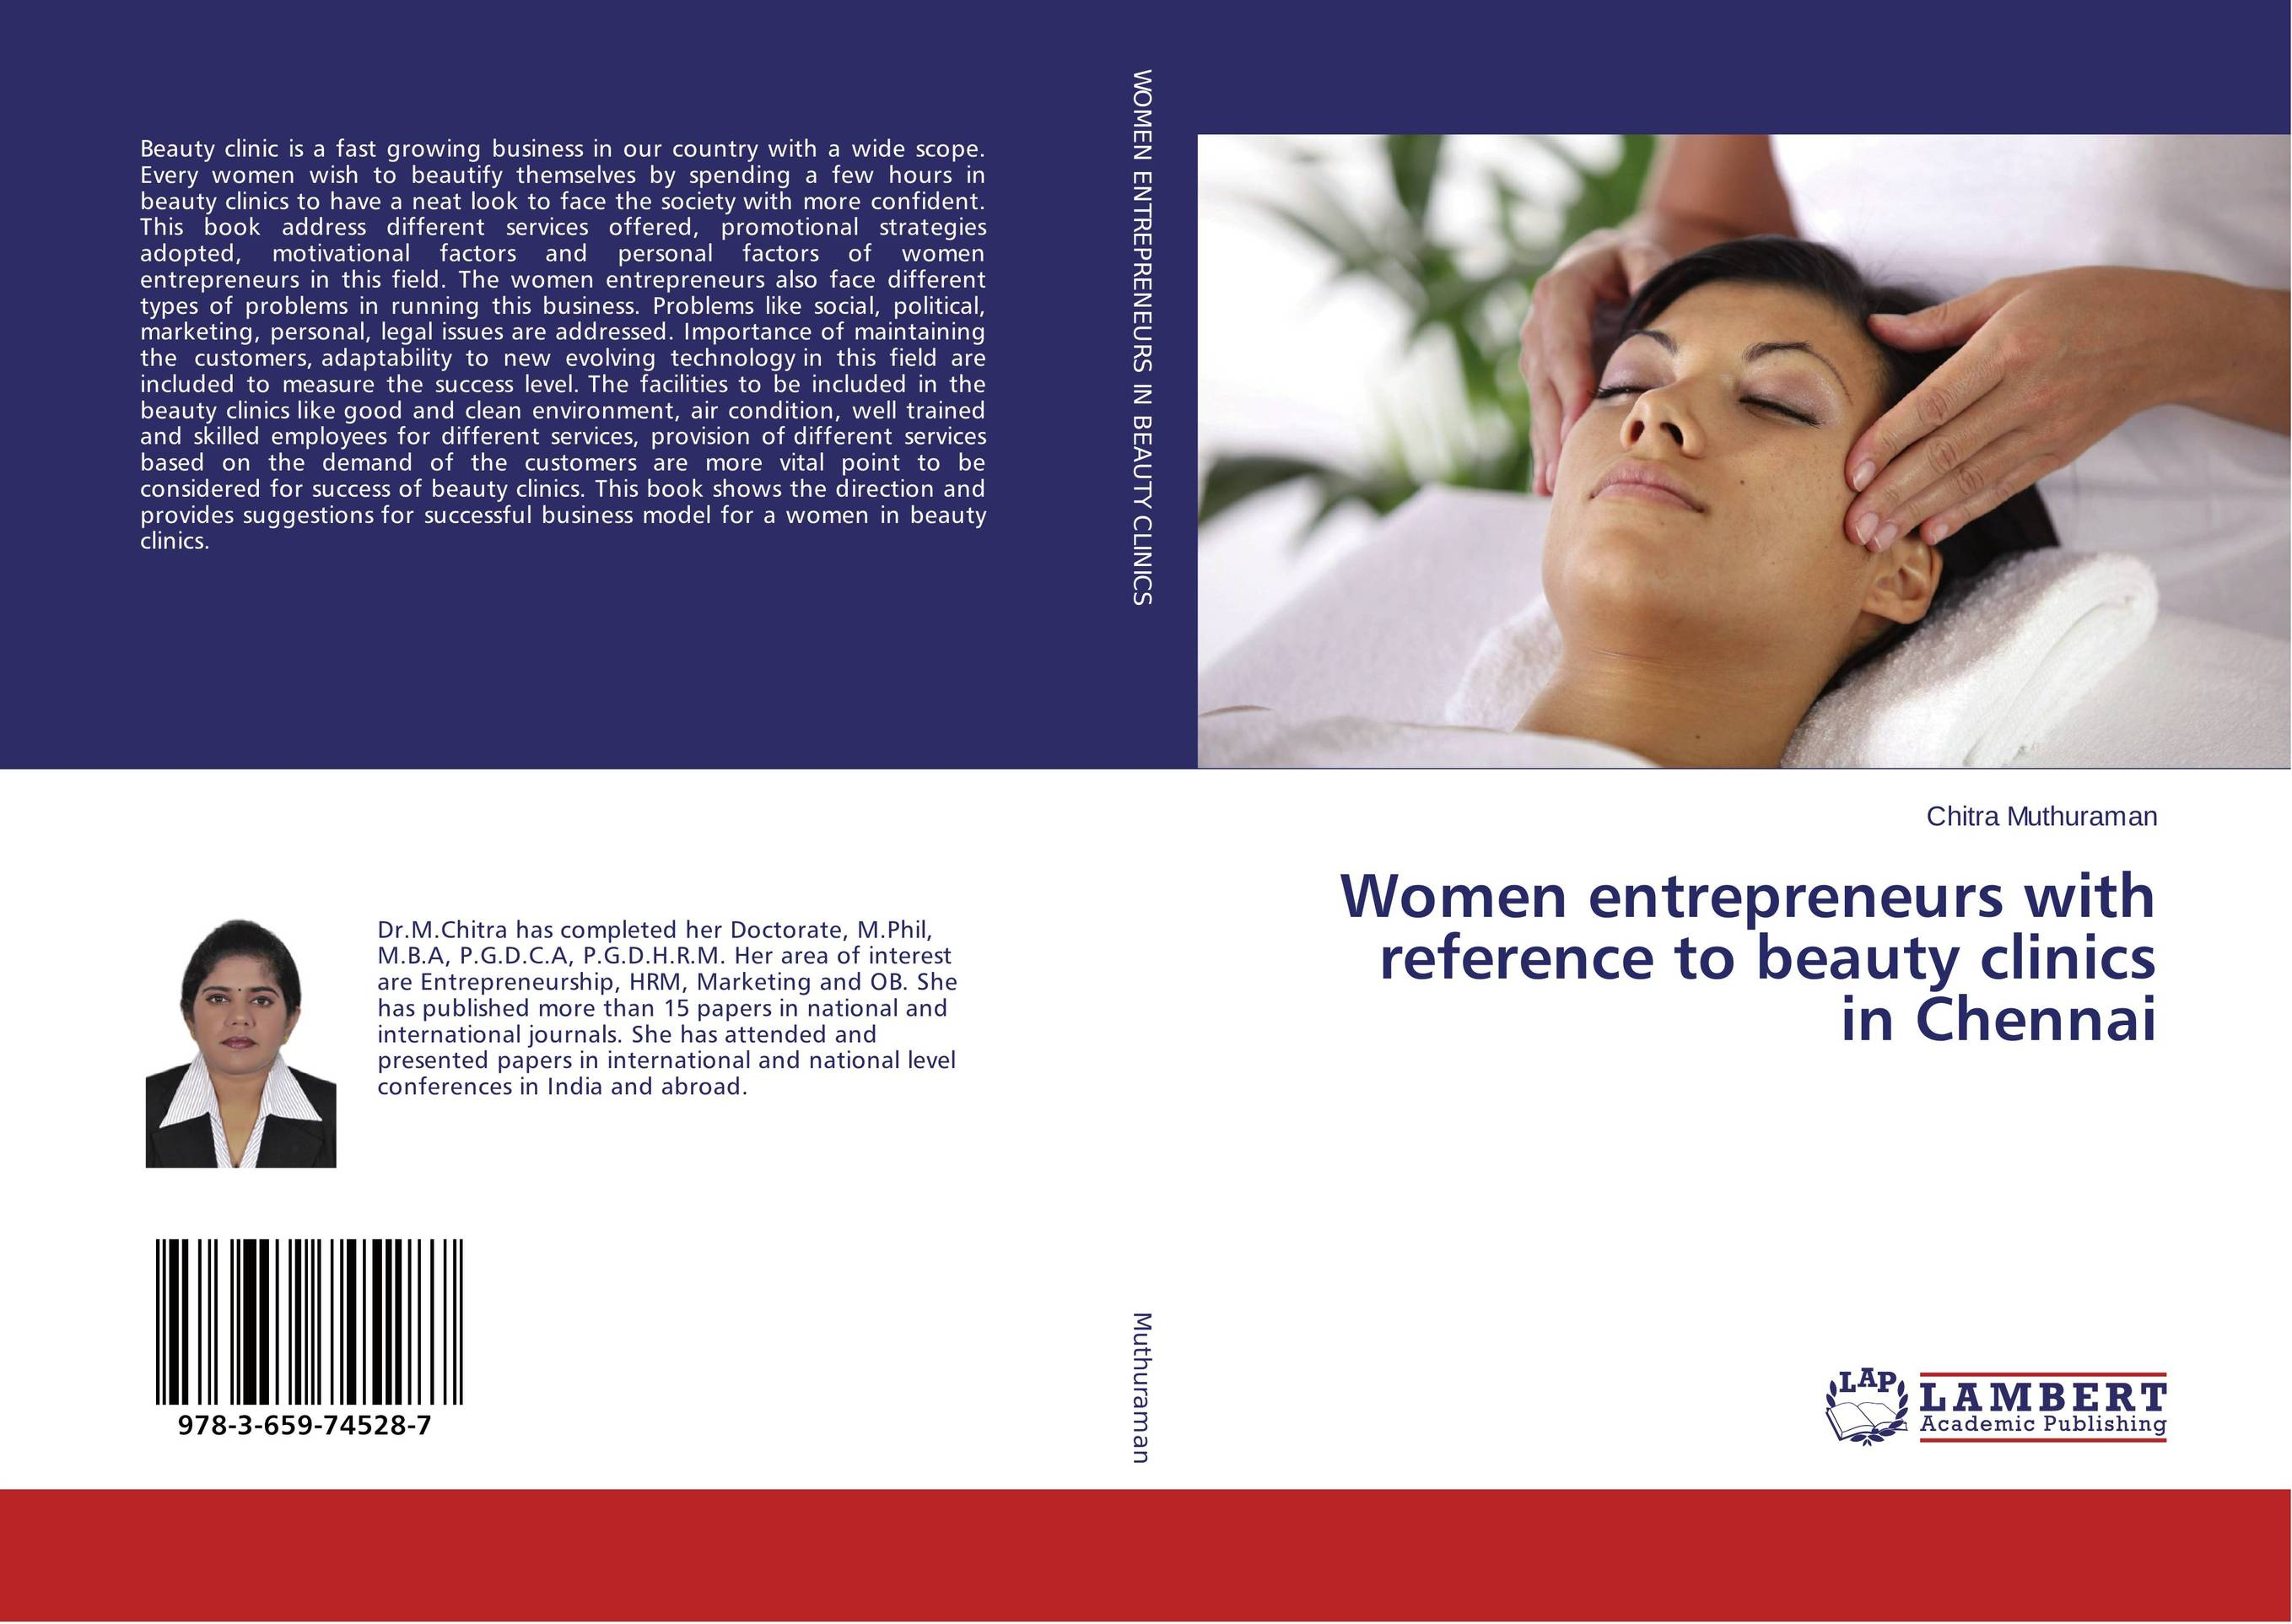 Women entrepreneurs with reference to beauty clinics in Chennai